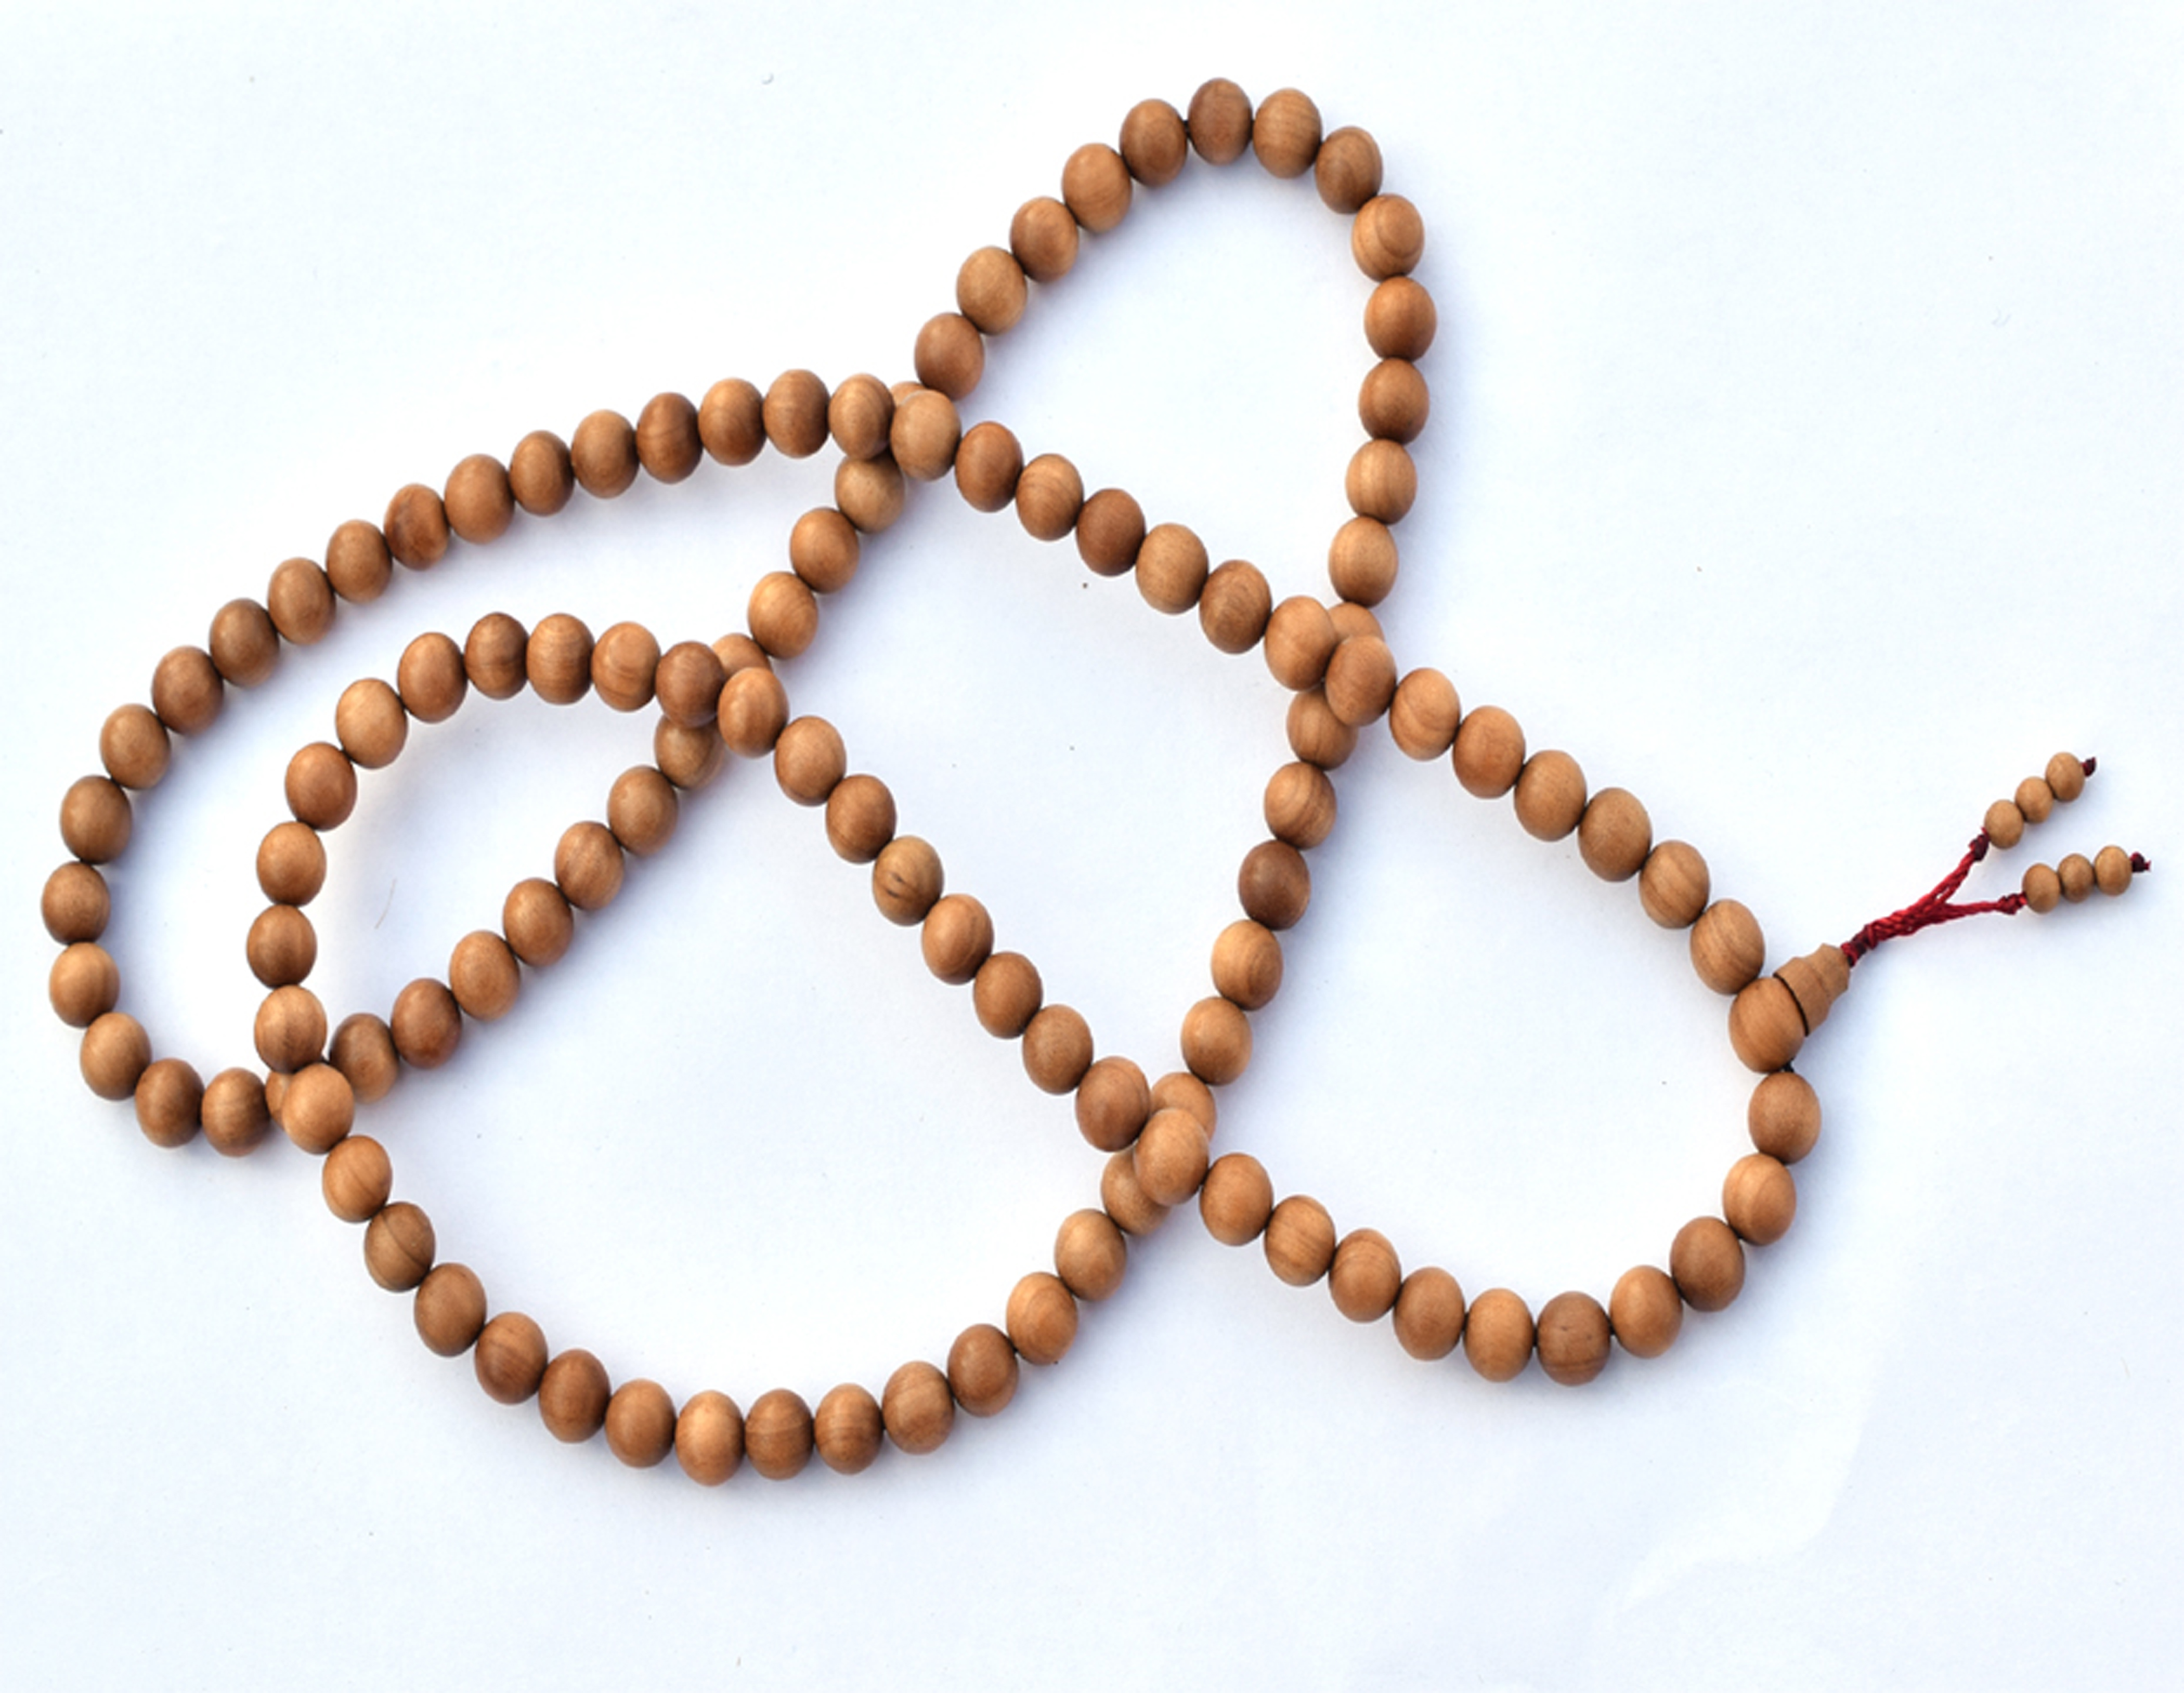 Hindu Rosary Sandal Wood Beads Indian Sandalwood Hinduism Prayer Beads Buy Hindu Rosary Sandal Wood Beads Indian Sandalwood Hinduism Prayer Beads Product On Alibaba Com